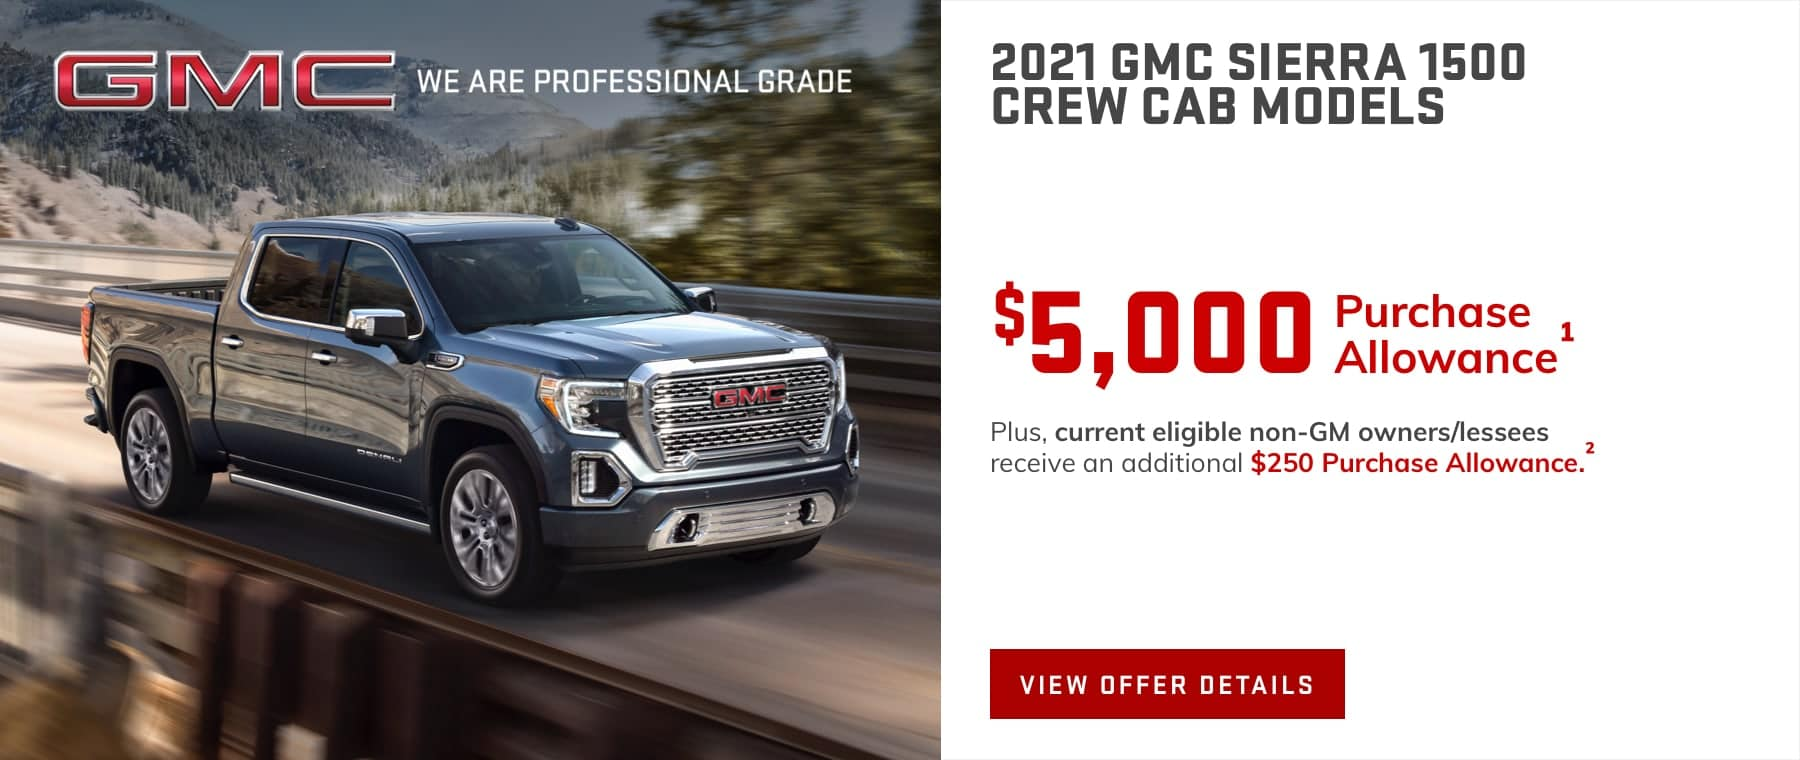 2021 GMC Sierra 1500 offer